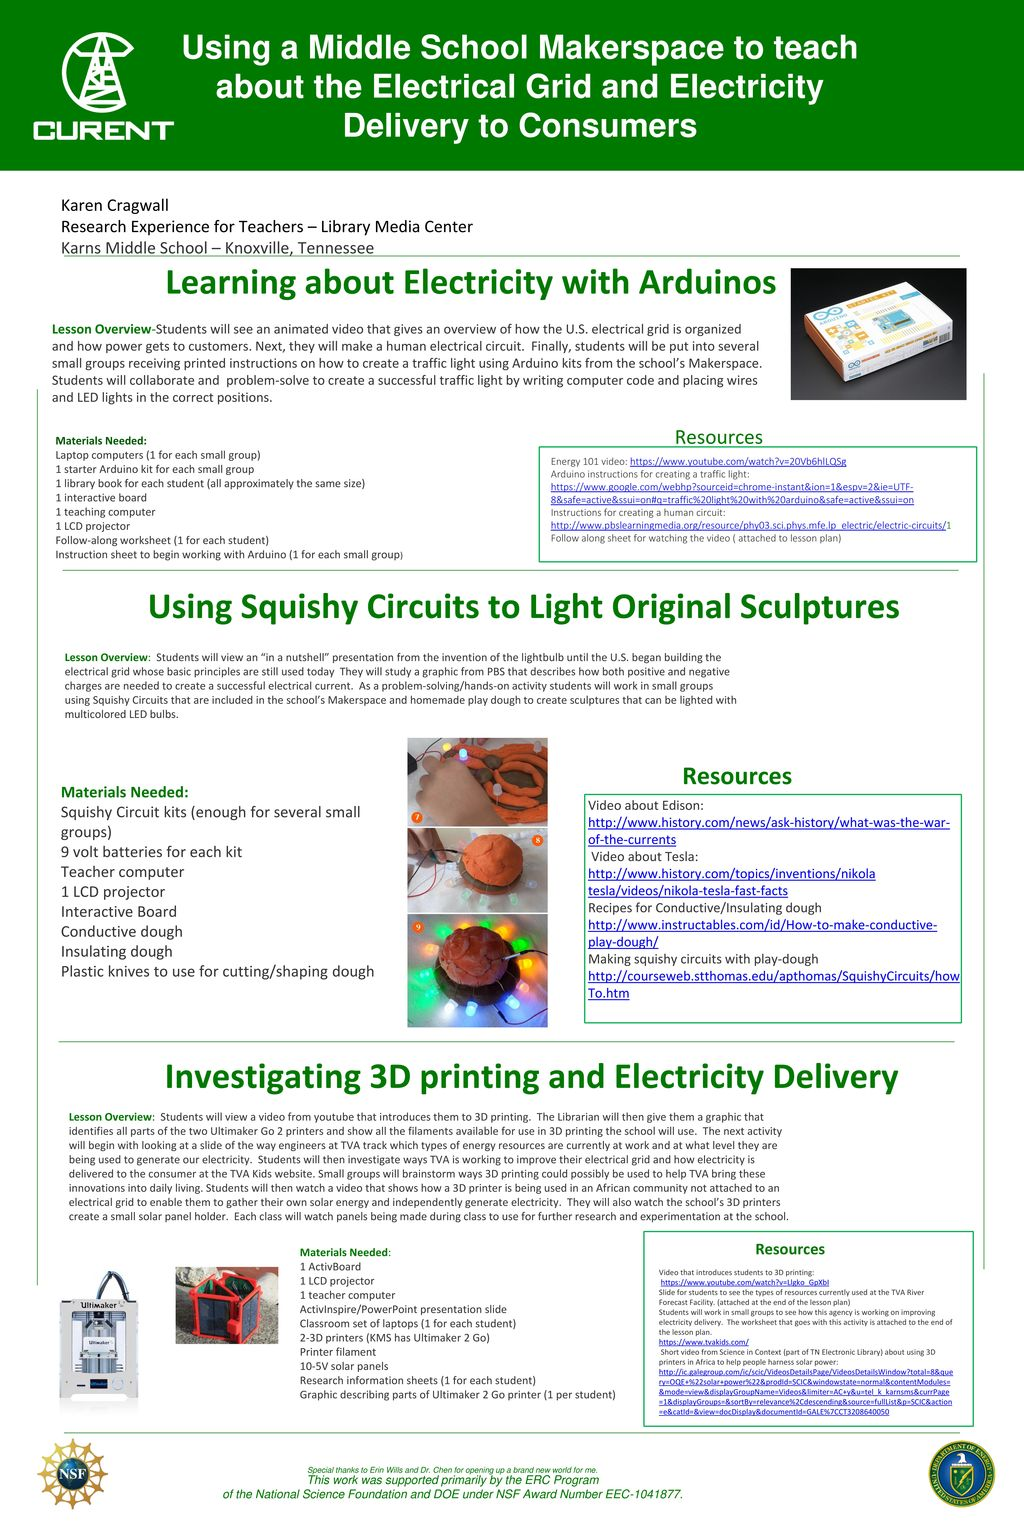 This Work Was Supported Primarily By The Erc Program Ppt Download How To Make Squishy Circuits And Batteries Dough